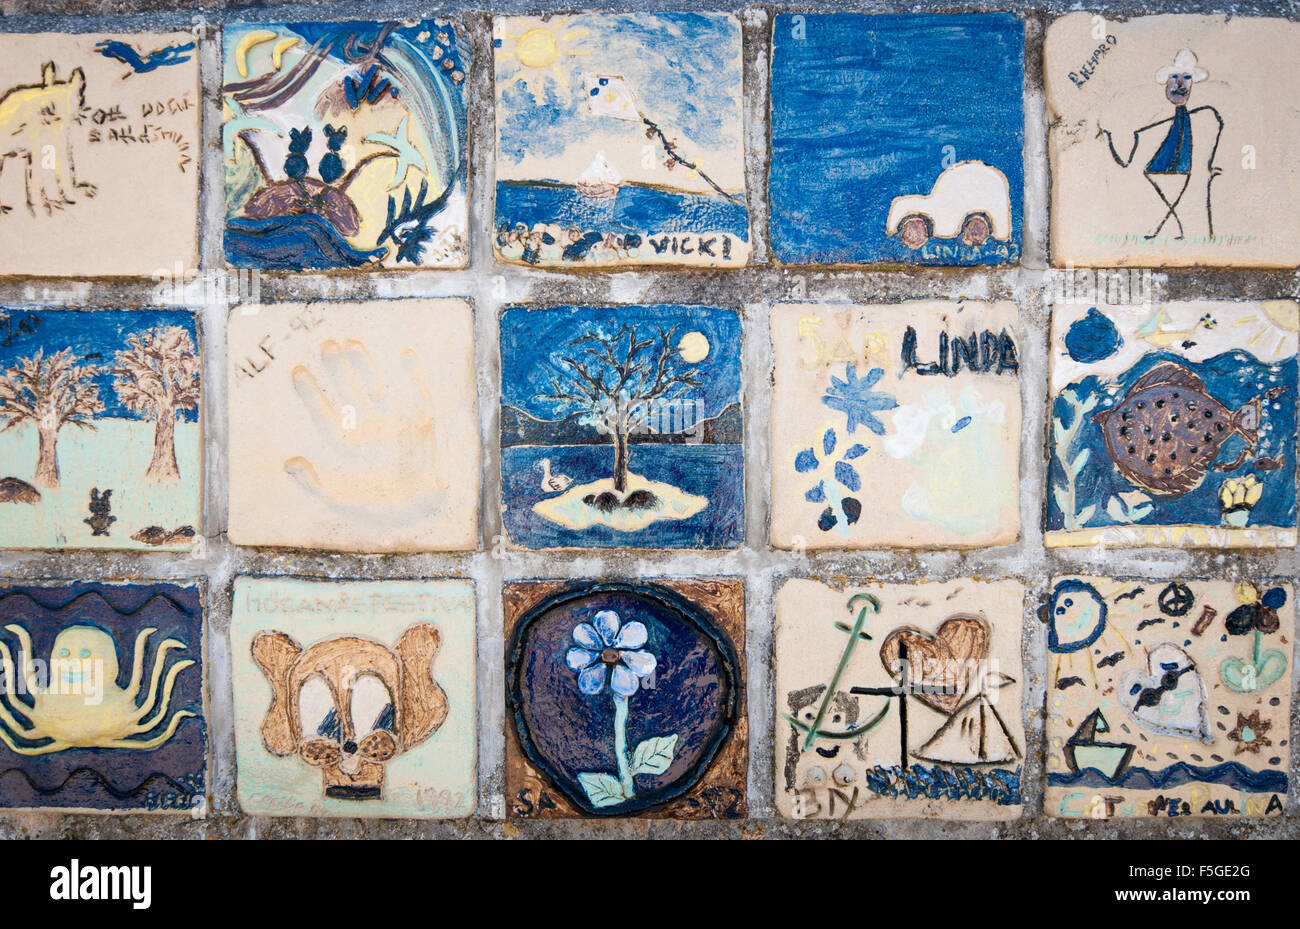 Childrens Painted Ceramic Tile Art On The Seawall In Hgans Stock